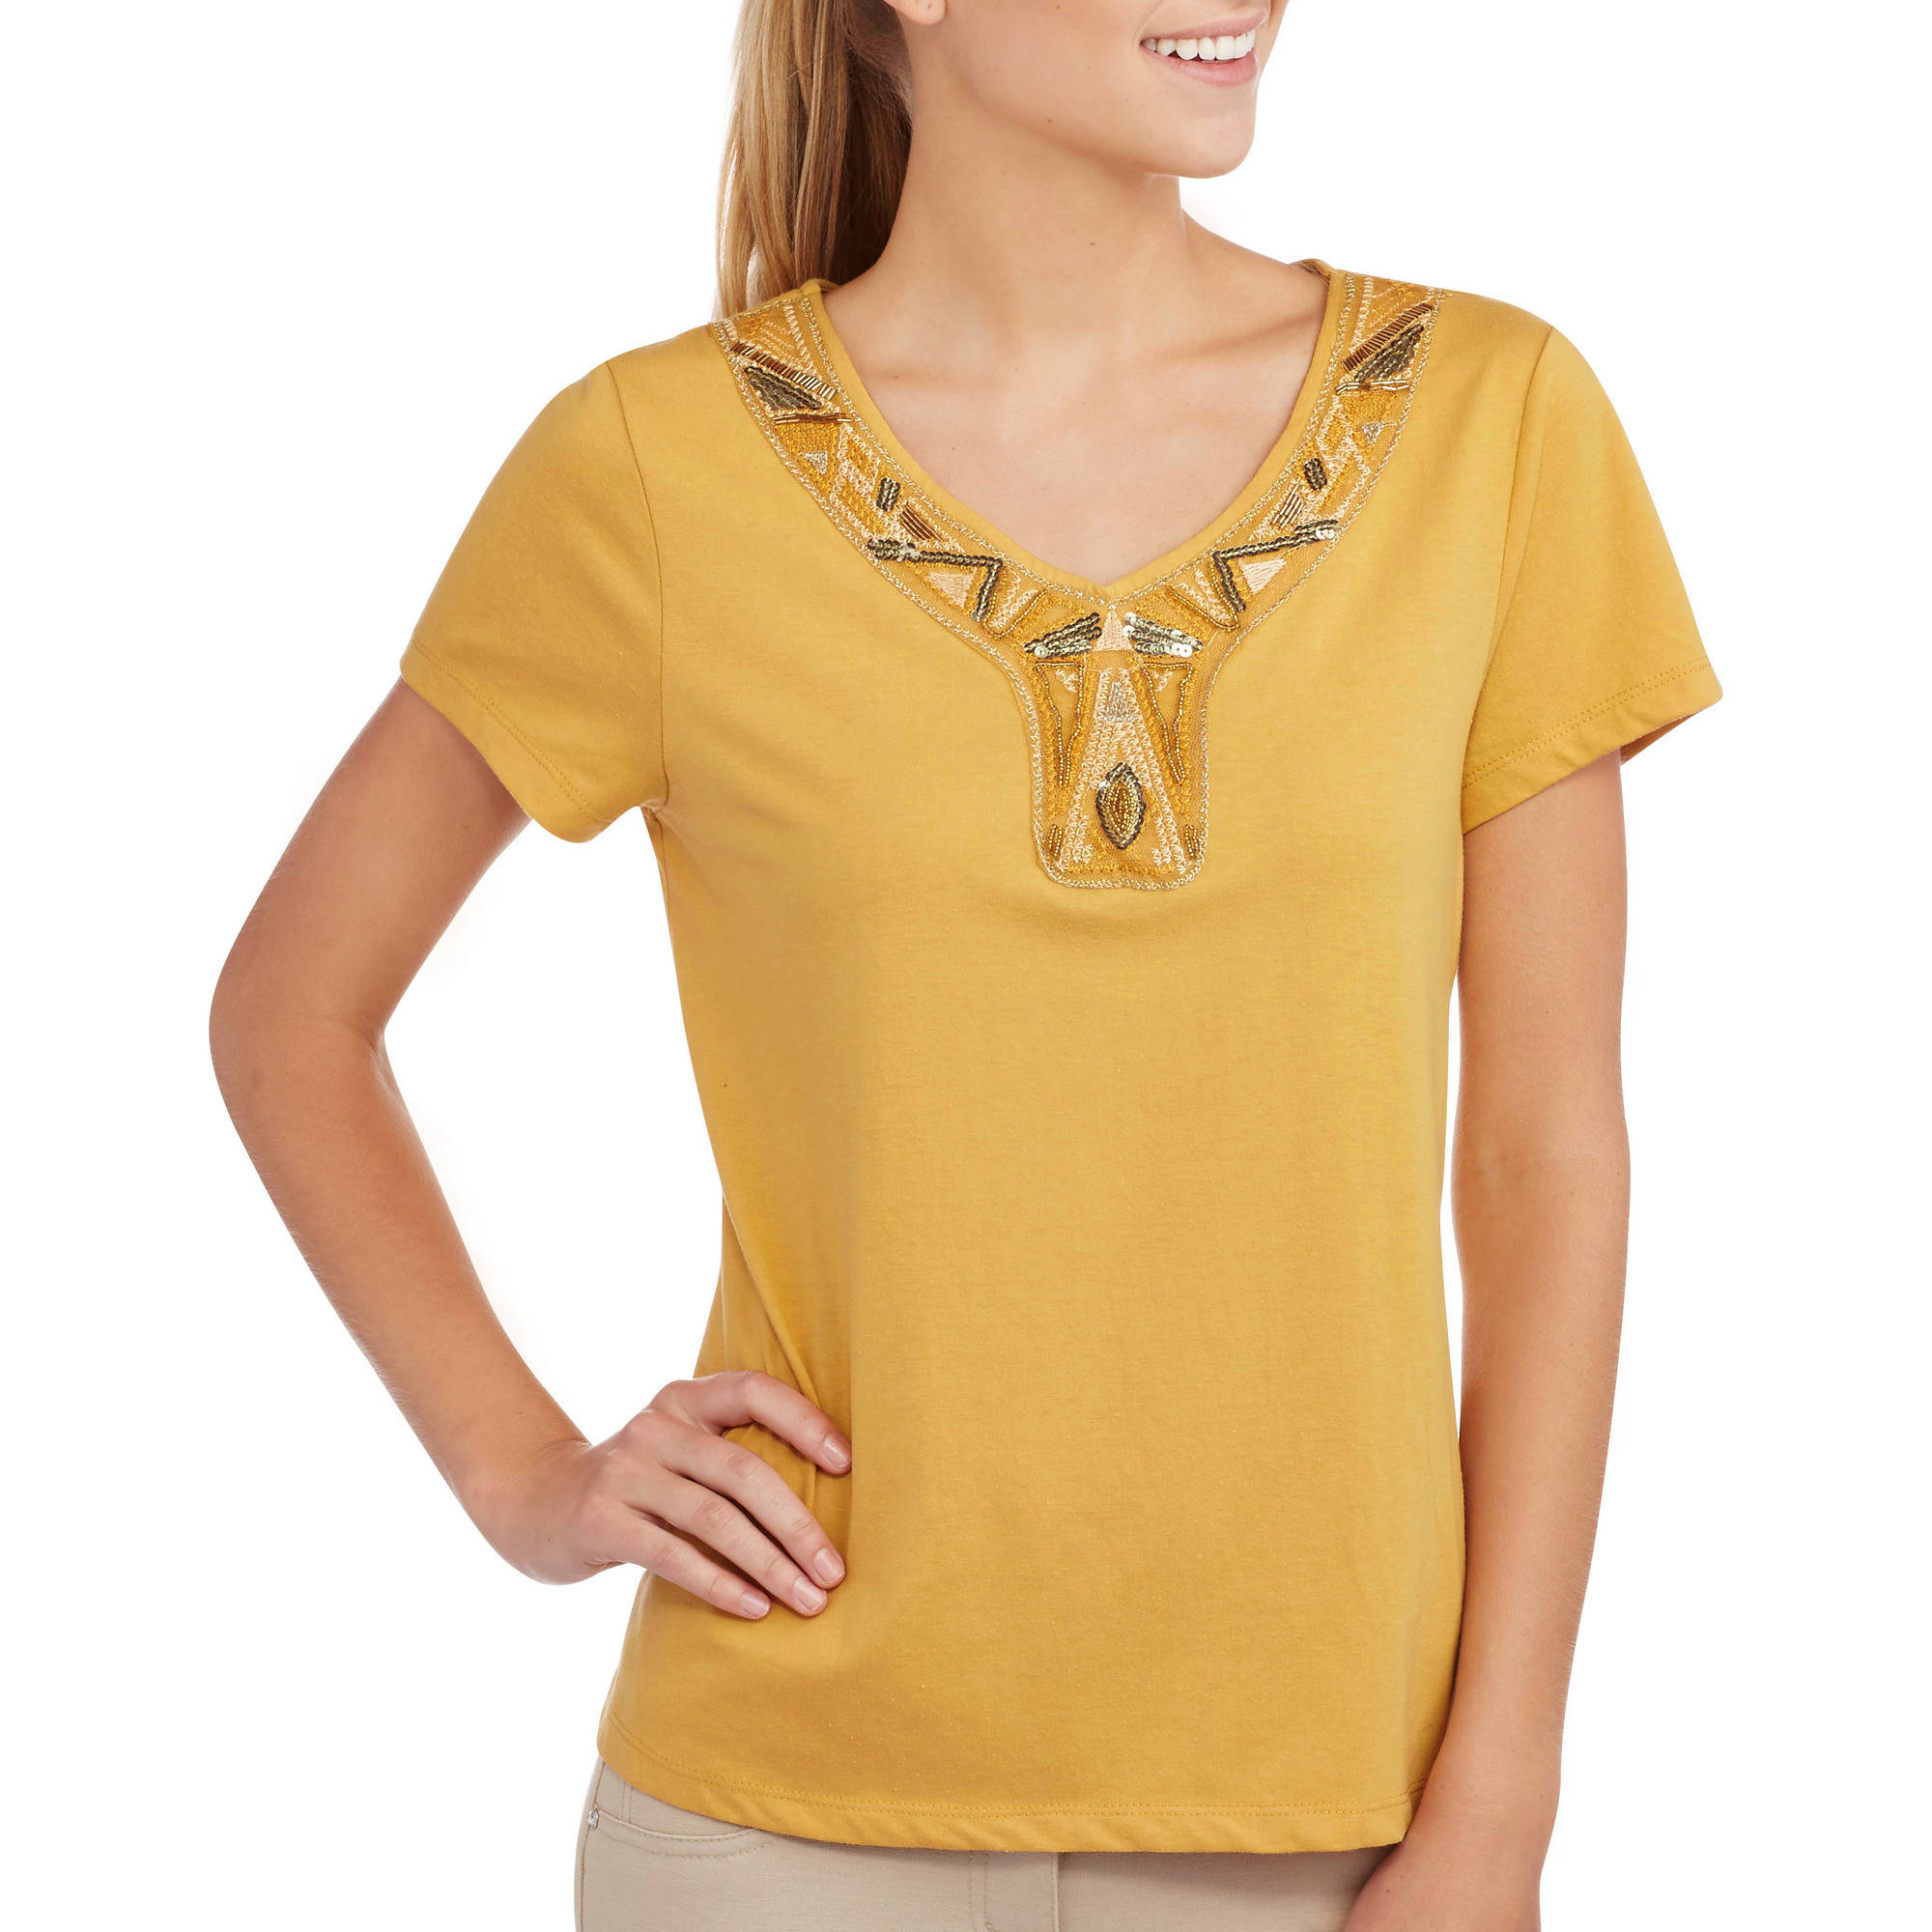 Tru Self Women's Beaded Sequin Embroidered V-Neck Top